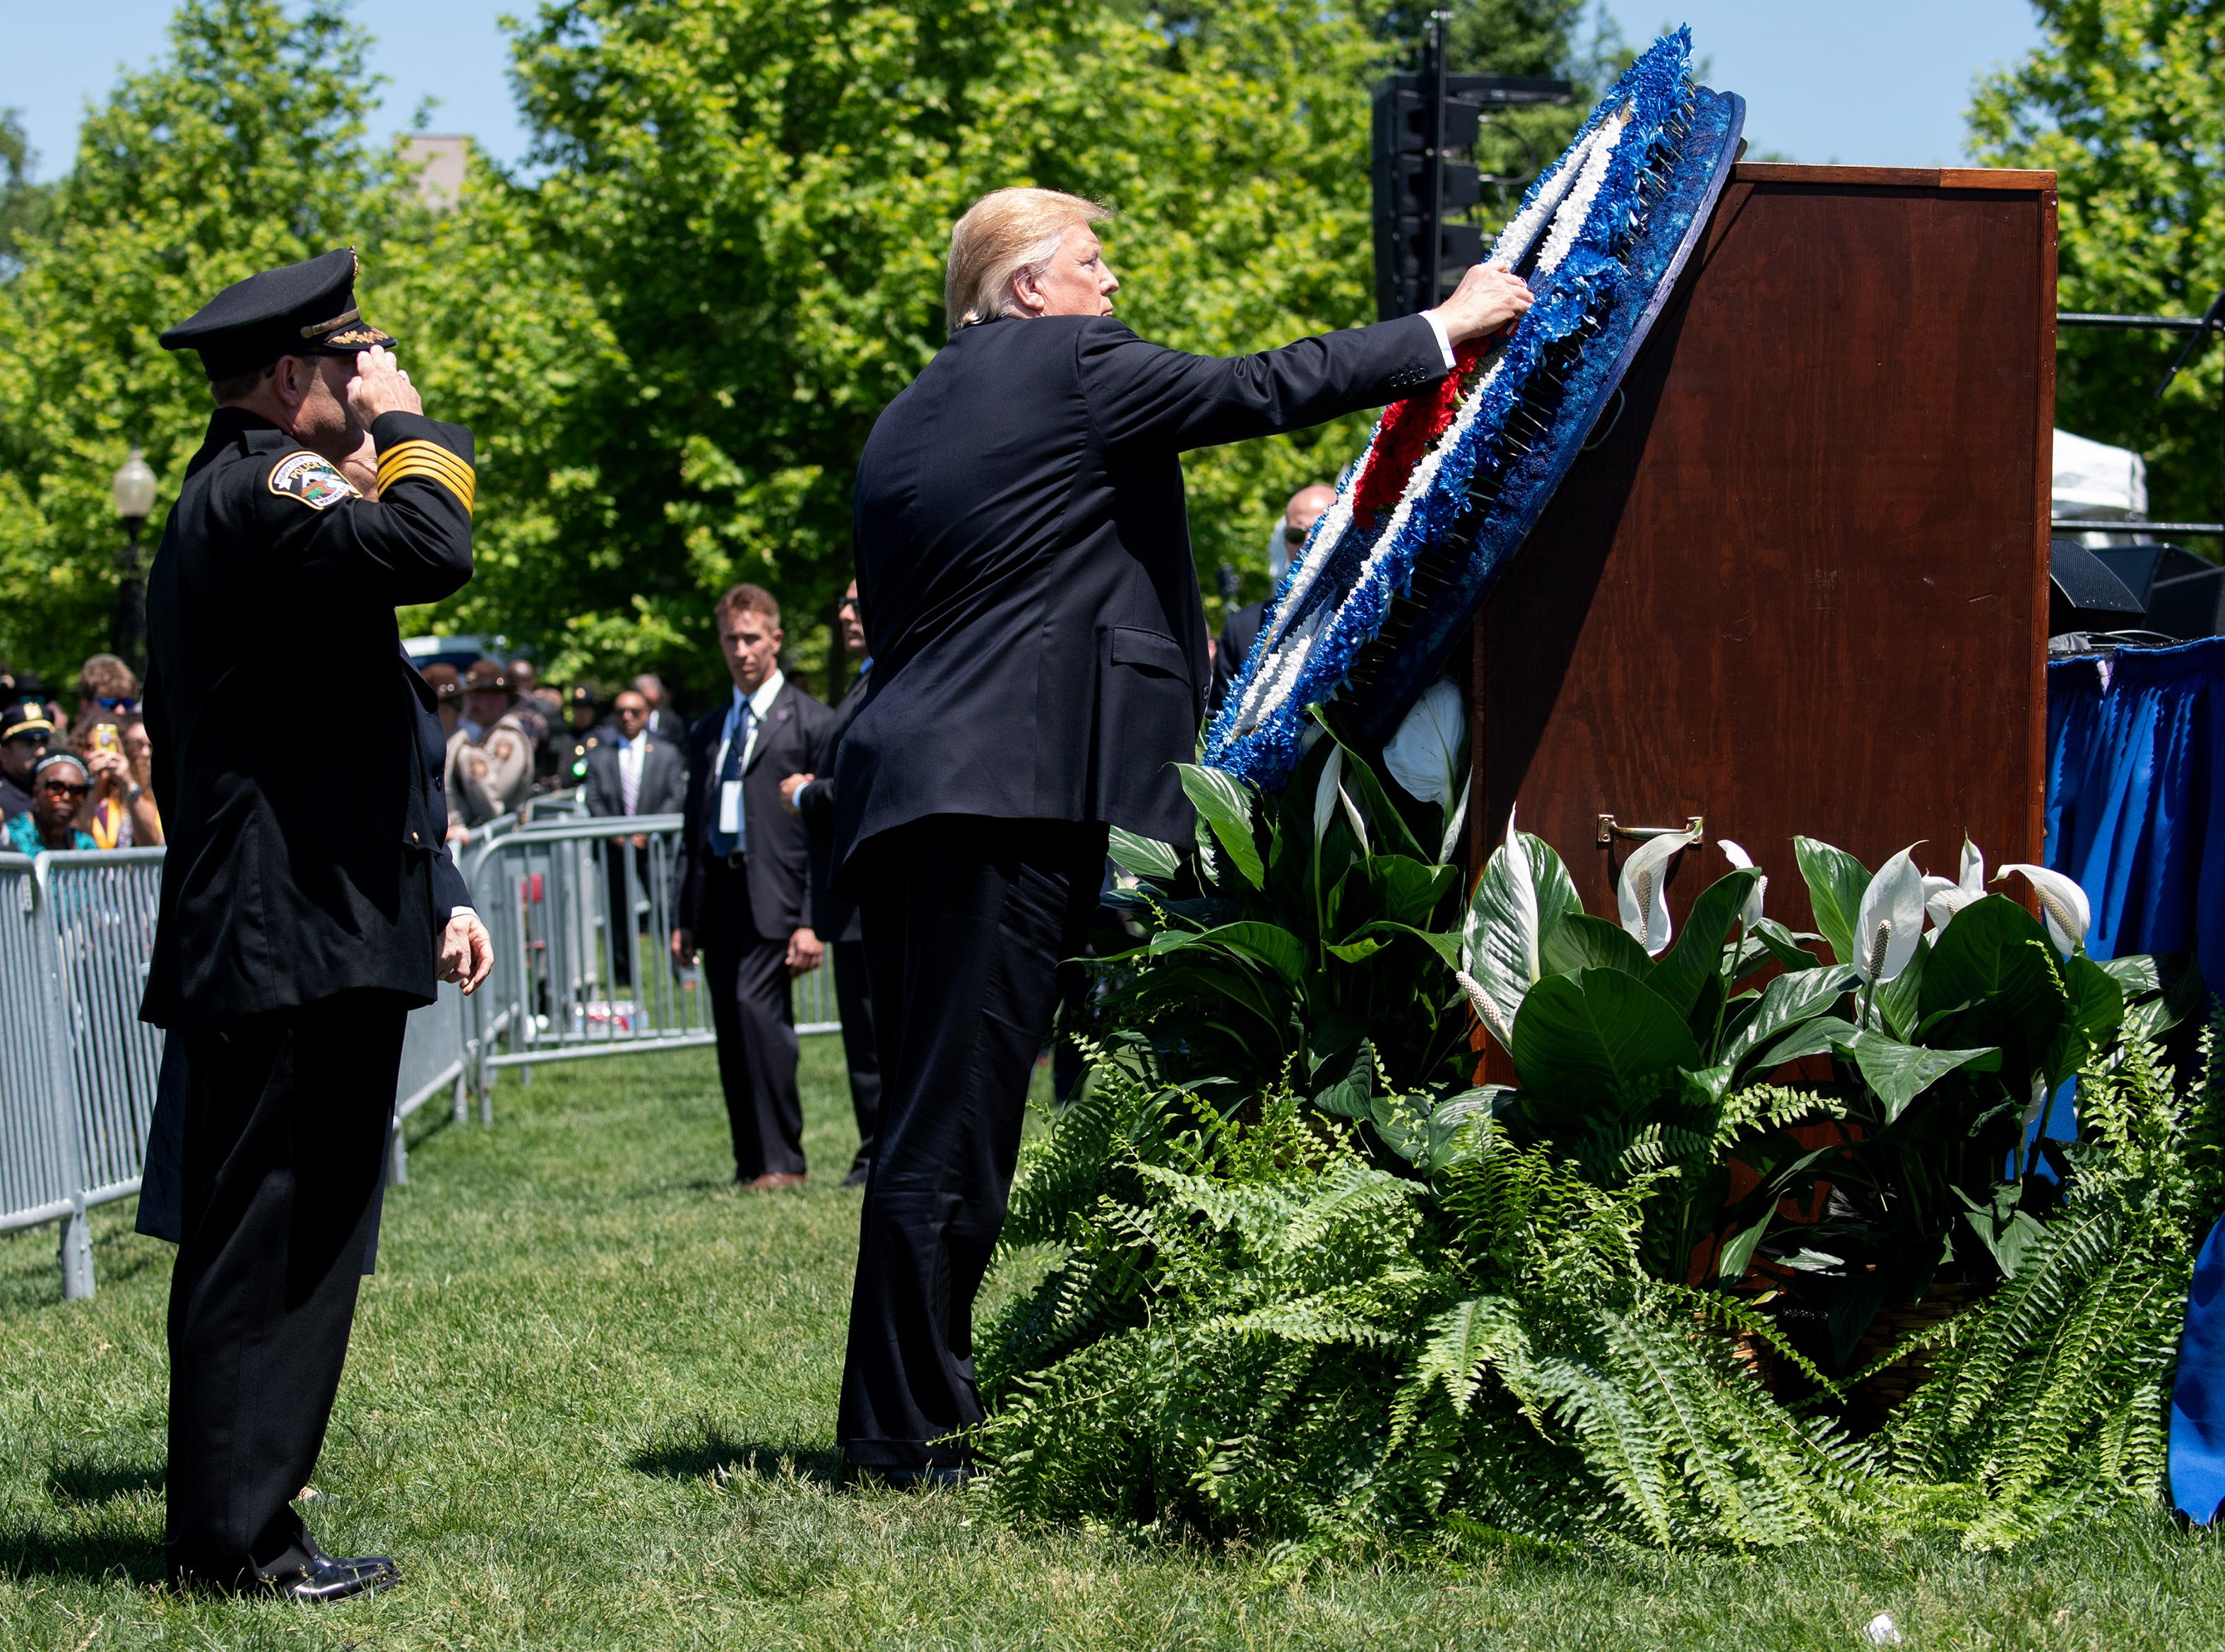 President Donald J. Trump places a flower on a wreathes during the 38th annual National Peace Officers' Memorial Service.